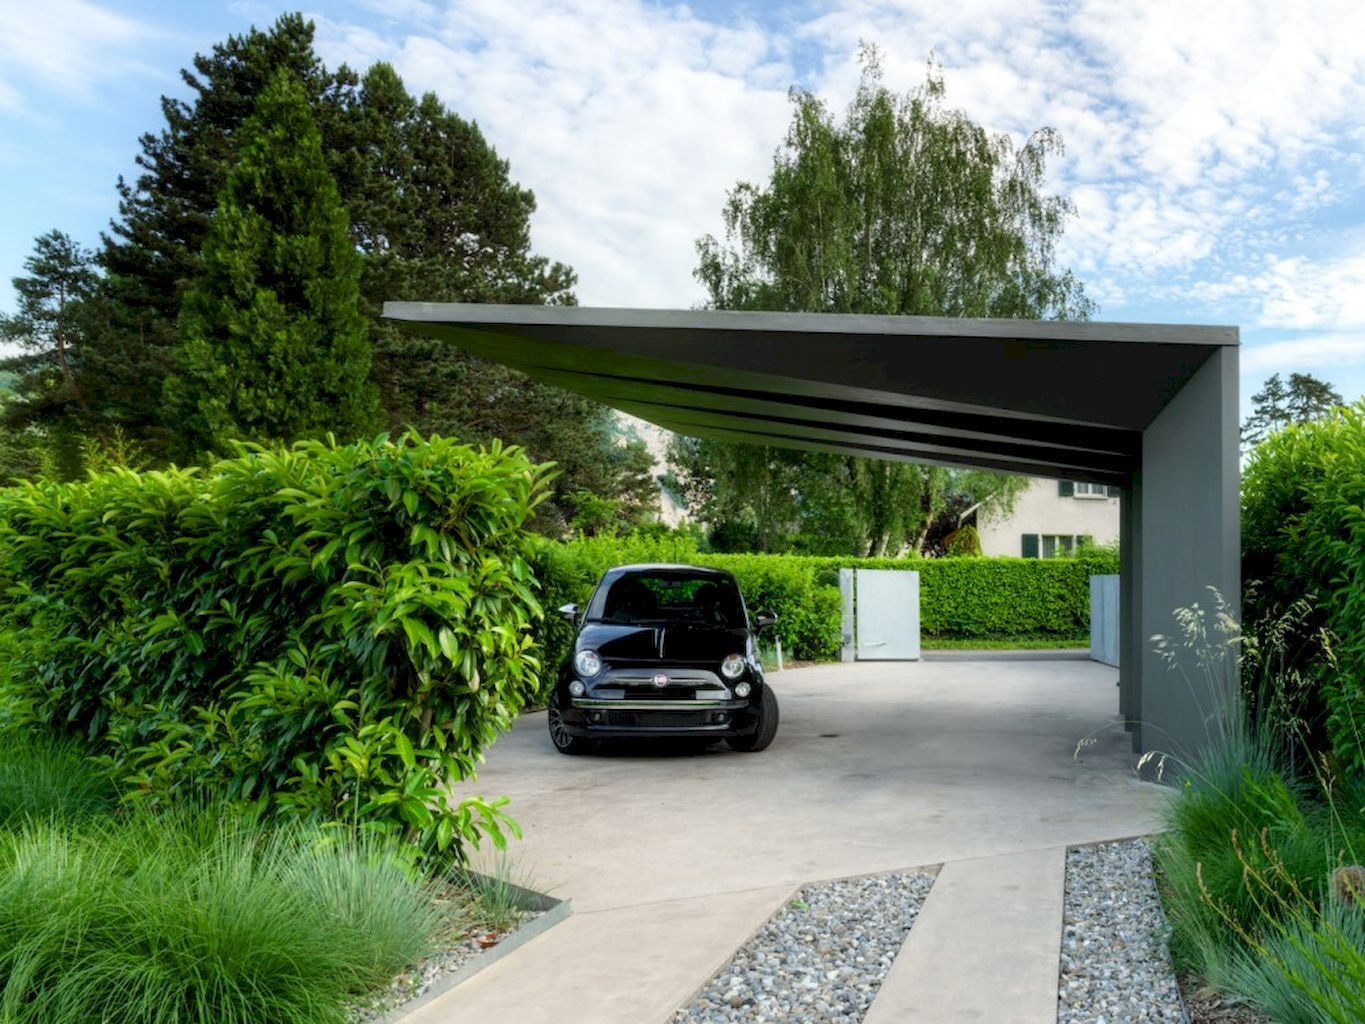 Adorable 55 Adorable Modern Carports Garage Designs Ideas Https Decorapatio Com 2017 06 10 55 Adorable Modern Modern Carport Carport Designs Exterior Design